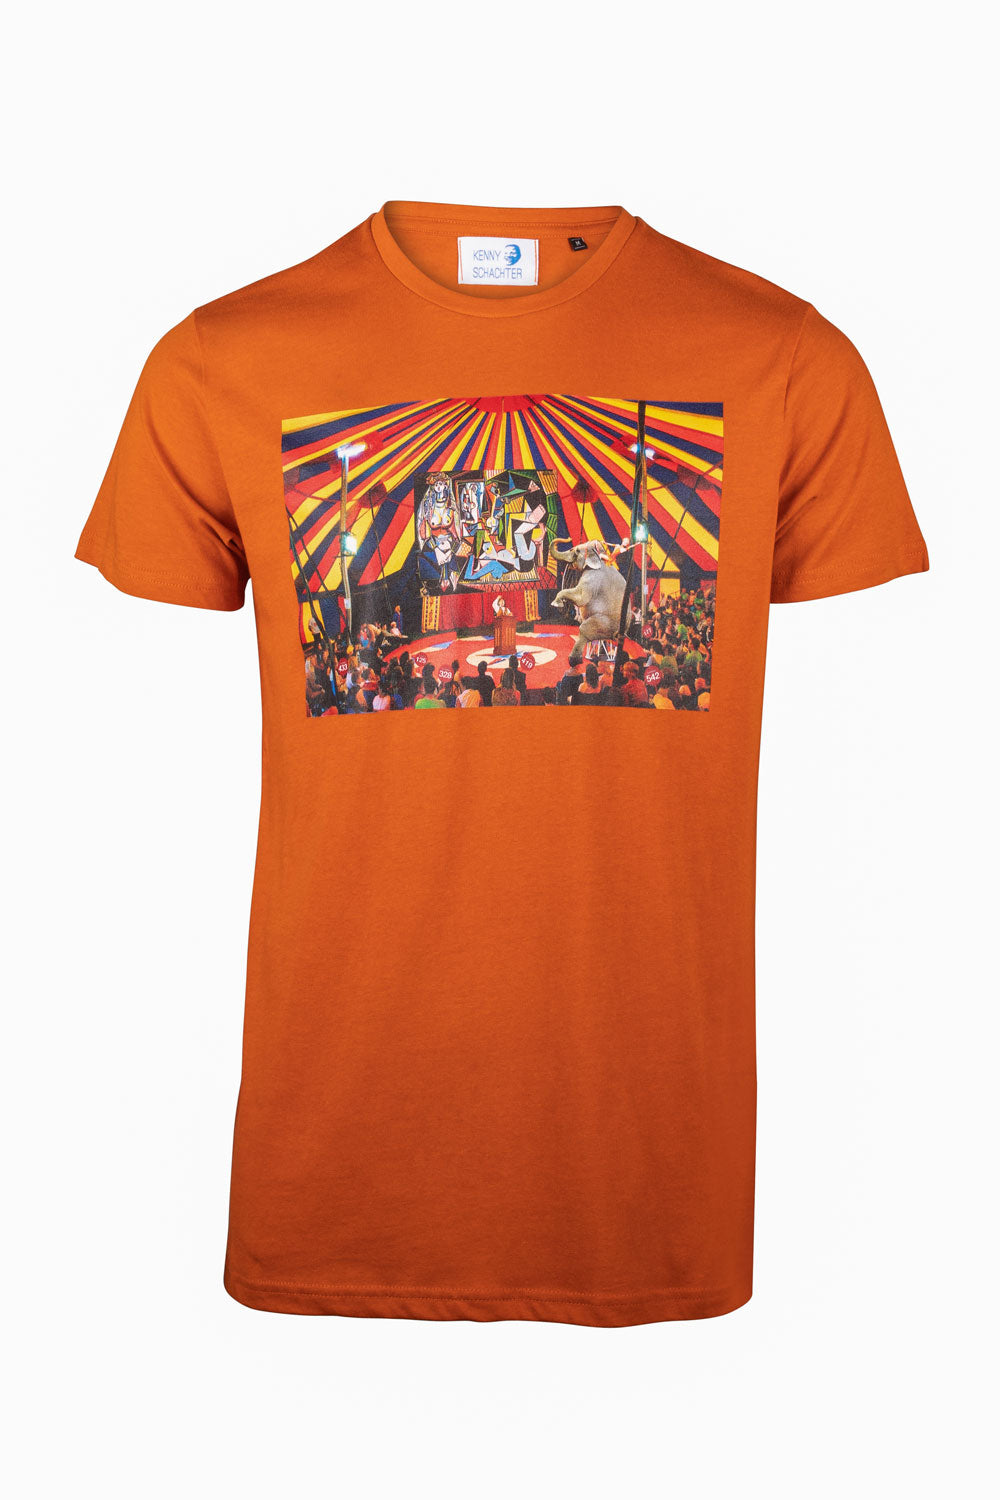 Kenny Schachter 'Picasso Circus' Graphic T-Shirt